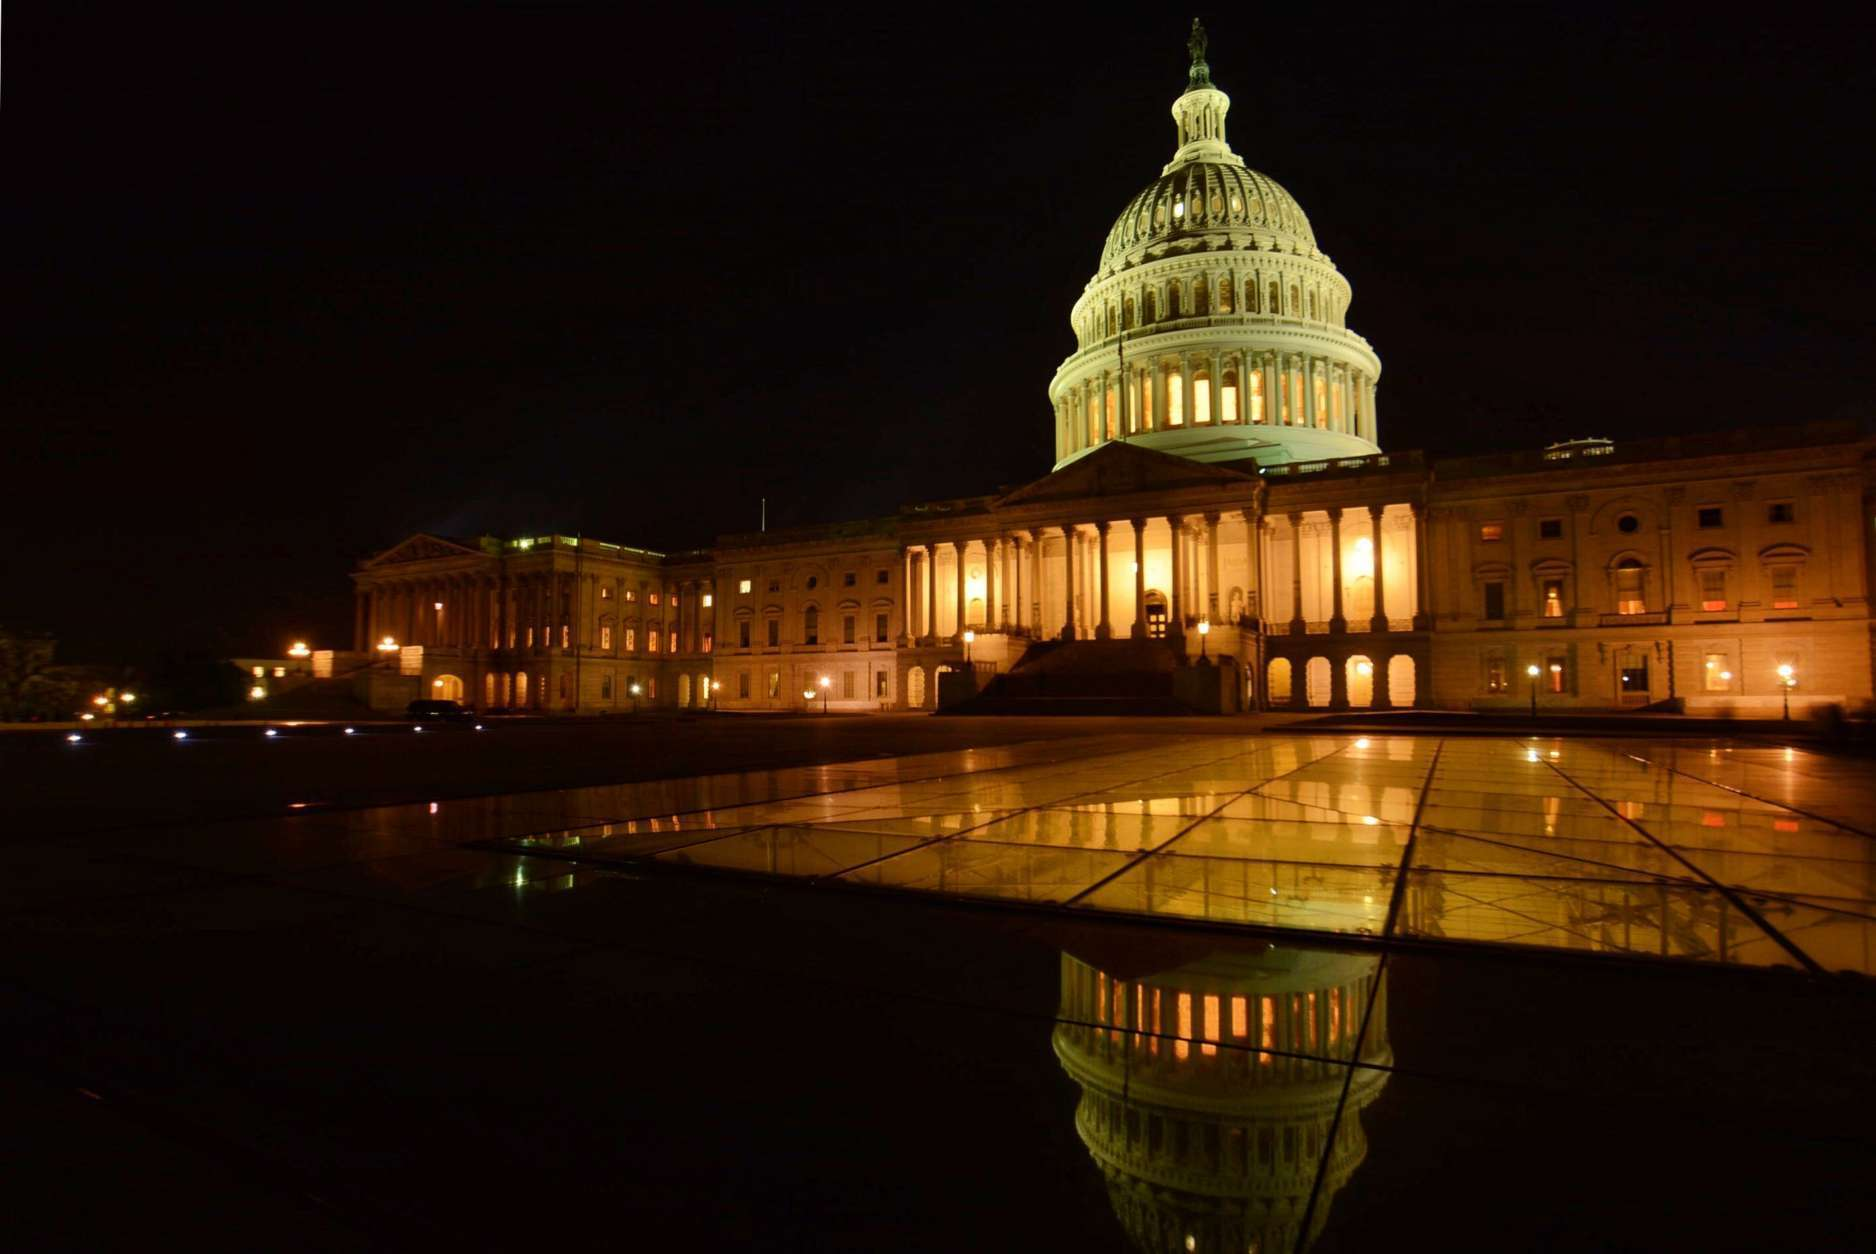 The federal government remains shut on Saturday, Jan. 20, 2018, as the Senate failed to approve a temporary funding bill Friday. (WTOP/Dave Dildine)